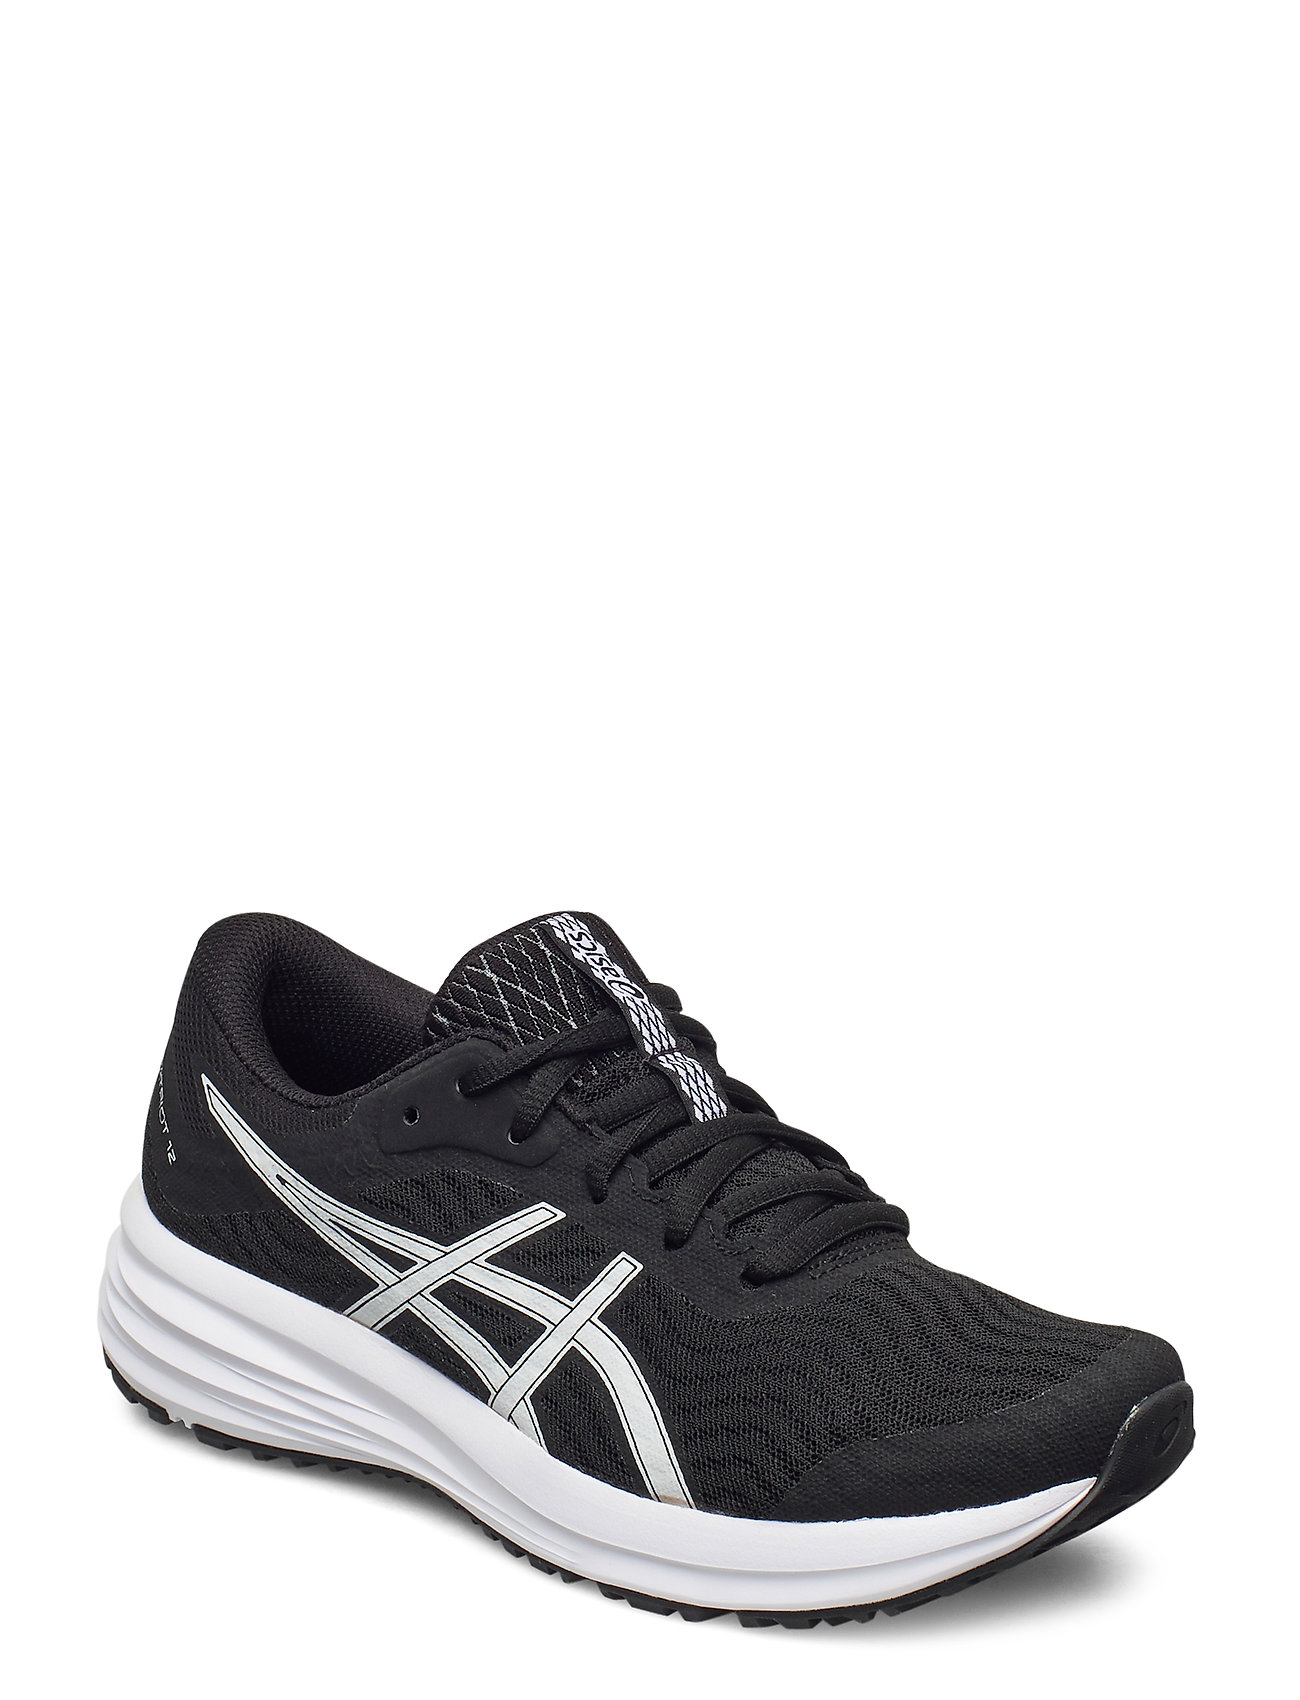 Patriot 12 Shoes Sport Shoes Running Shoes Sort Asics